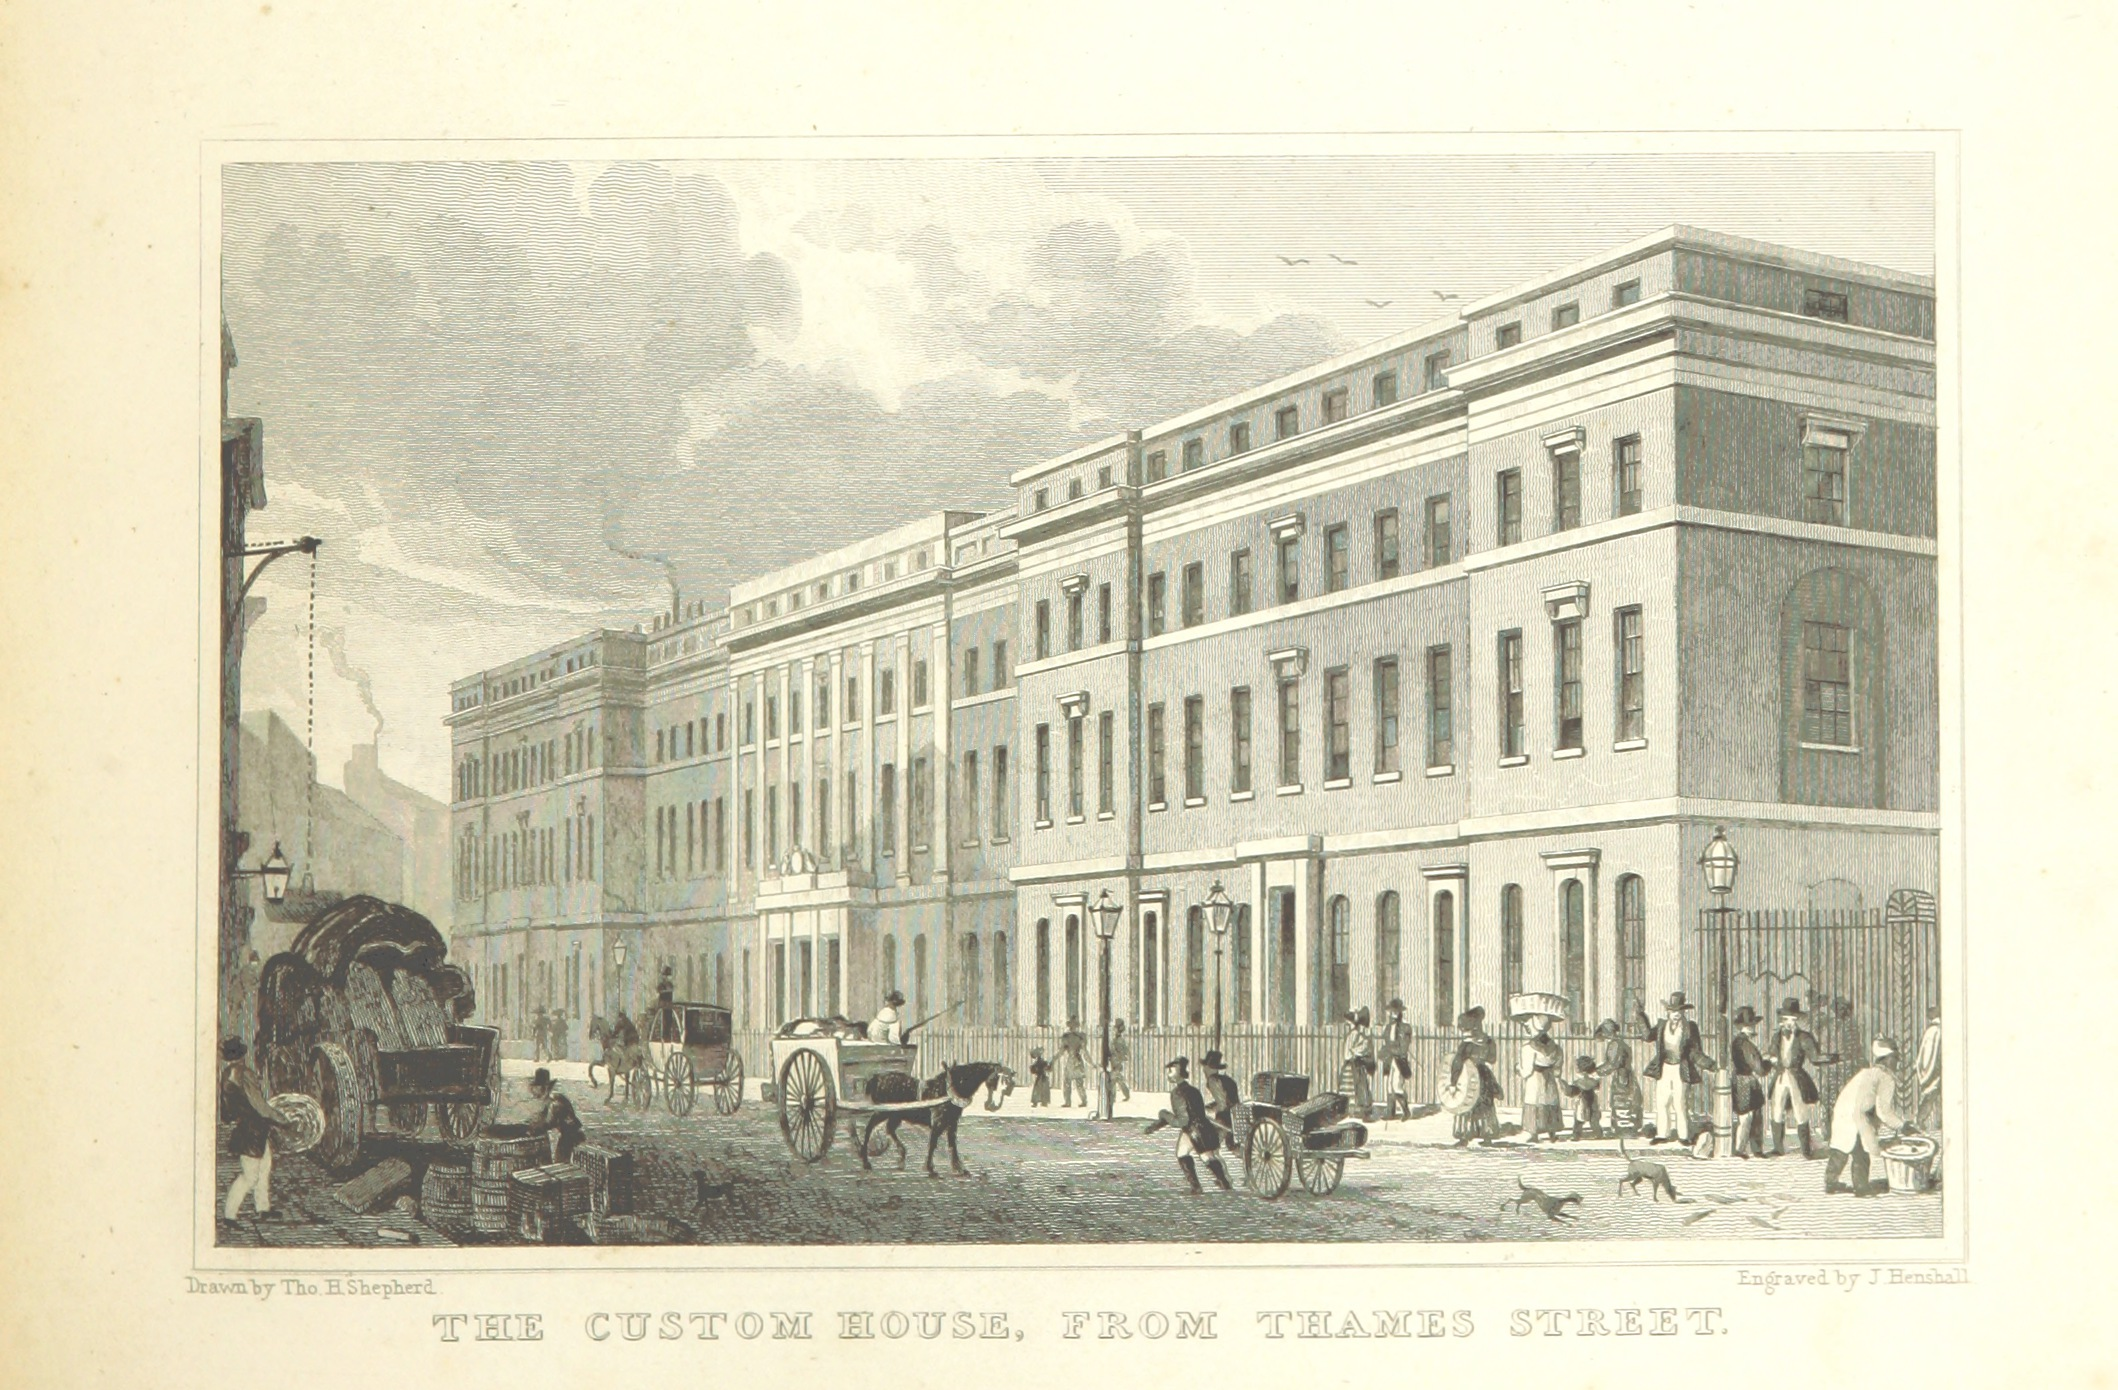 File:The Custom House, from Thames Street - Shepherd, Metropolitan Improvements (1828